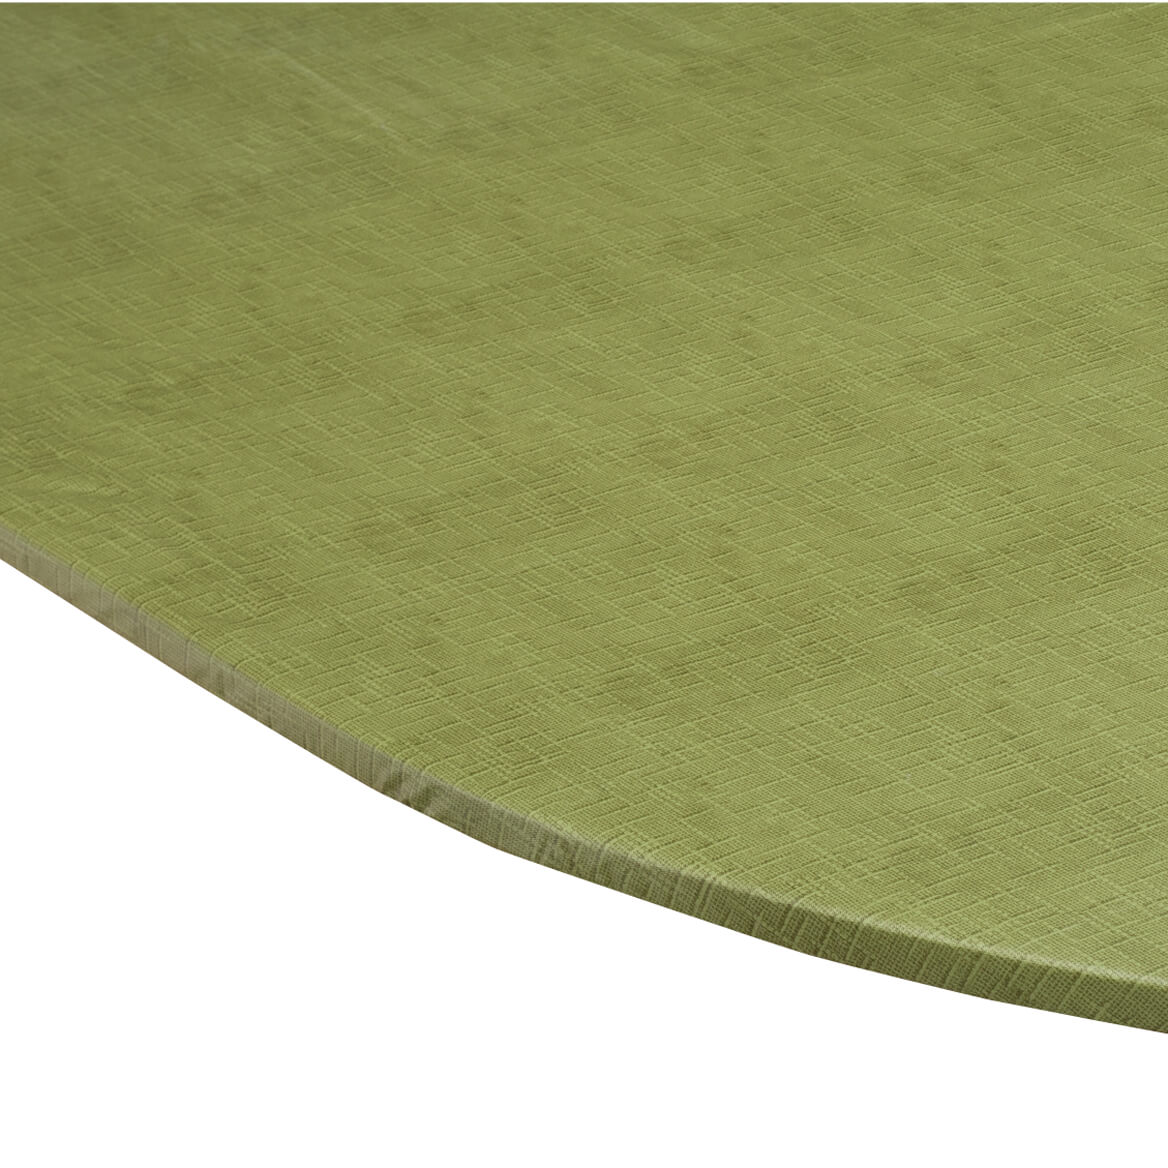 Illusion Weave Vinyl Elasticized Table Cover By Home-Style Kitchen™-356713